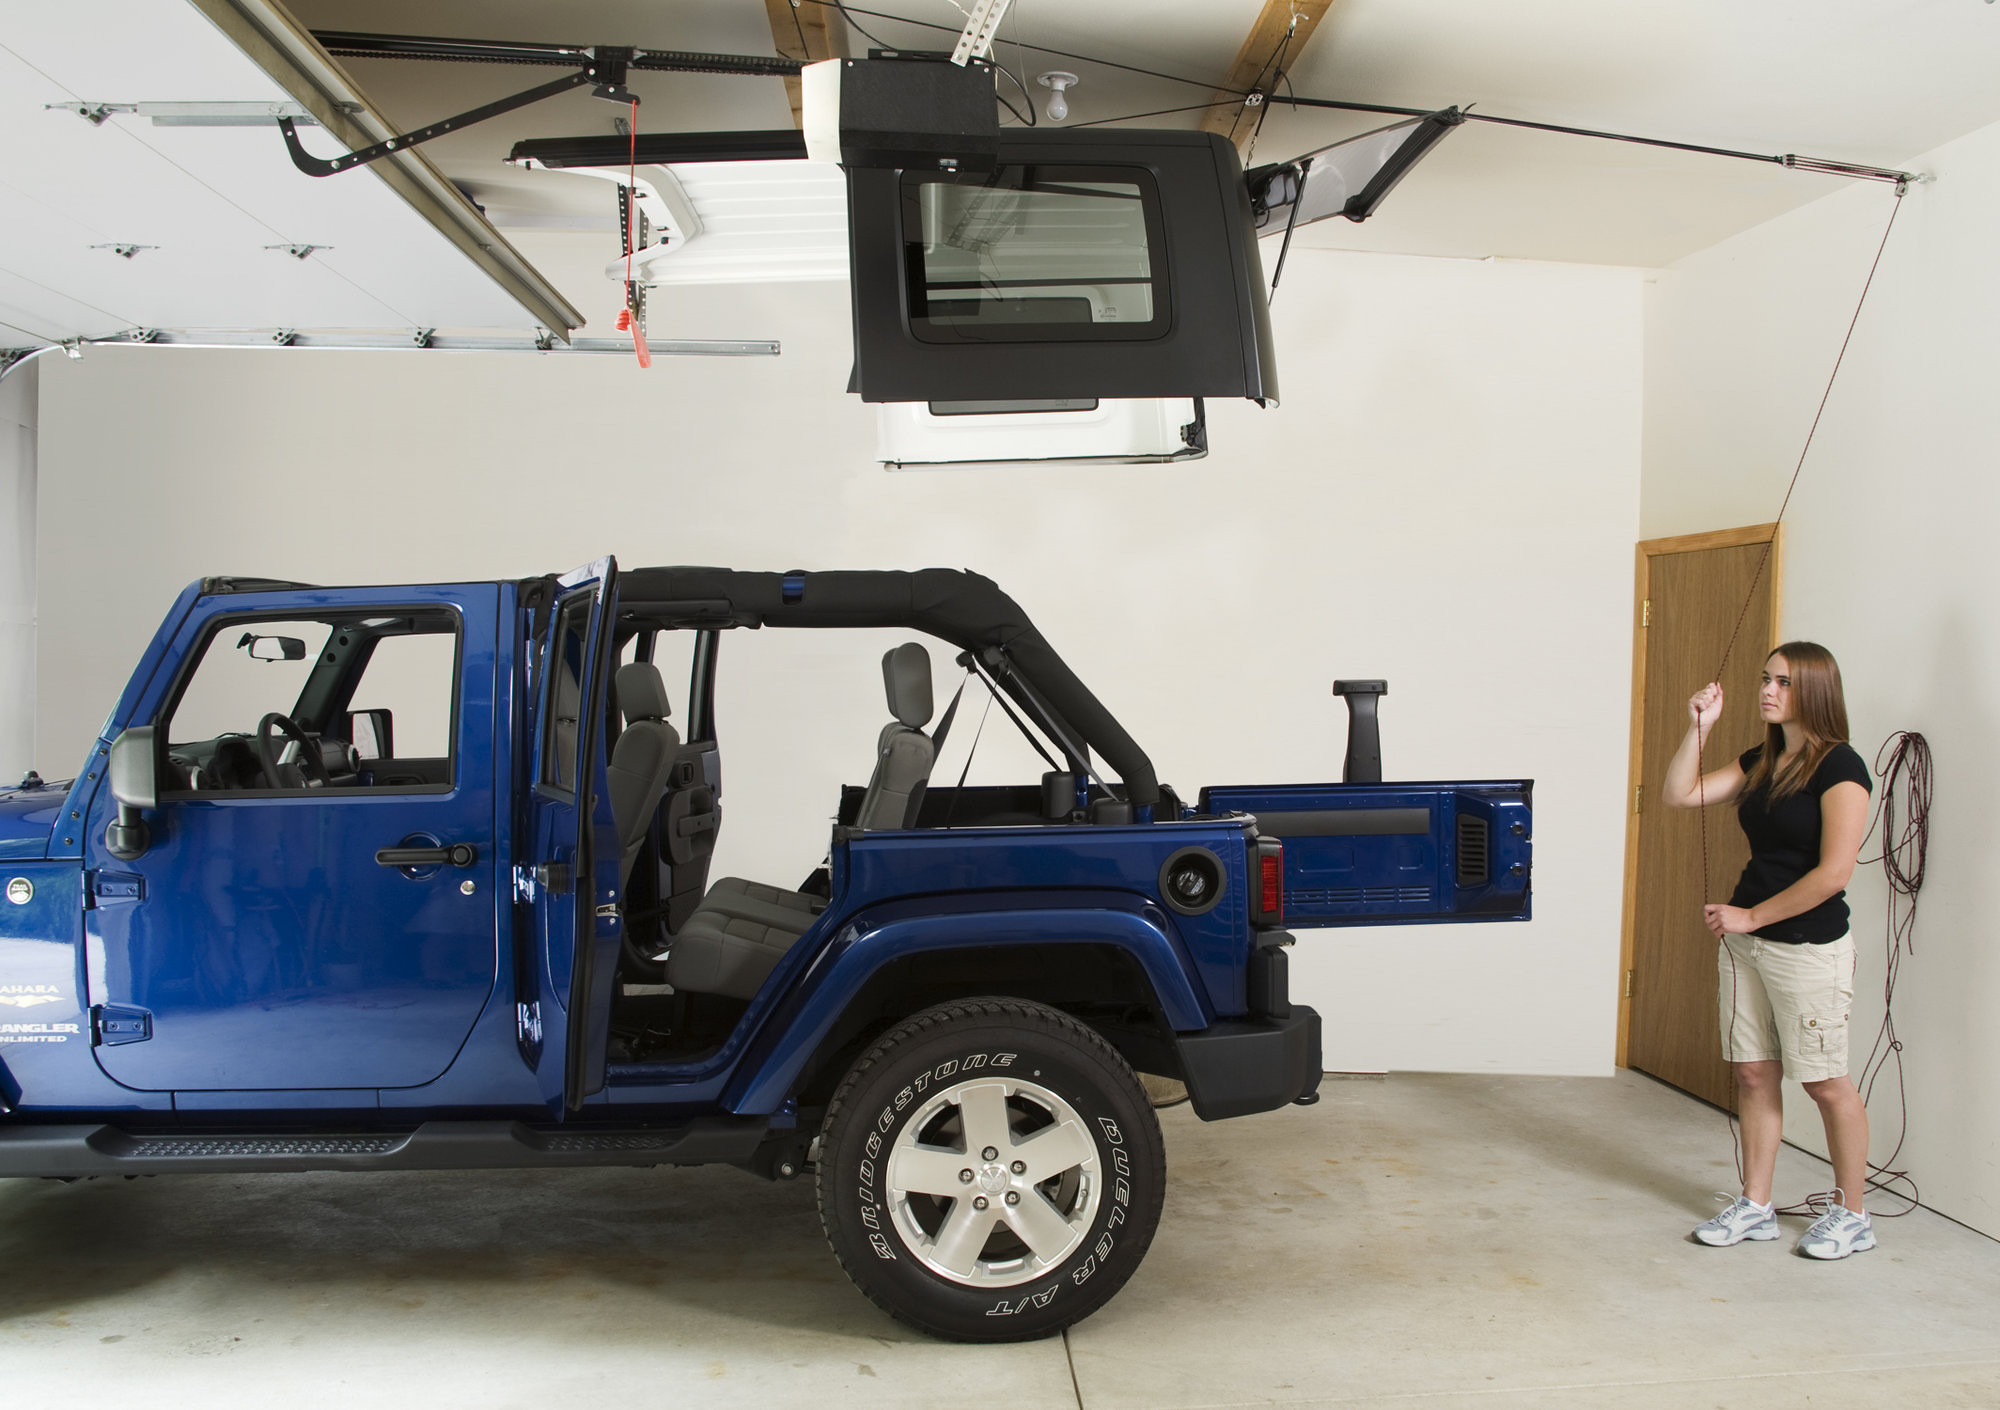 Harken Hoister Garage Hard Top Storage 4-Point Lift System | 45-145 lb Load | Up to 10' Ceilings | For 1987+ Various Jeep Models (See Details)